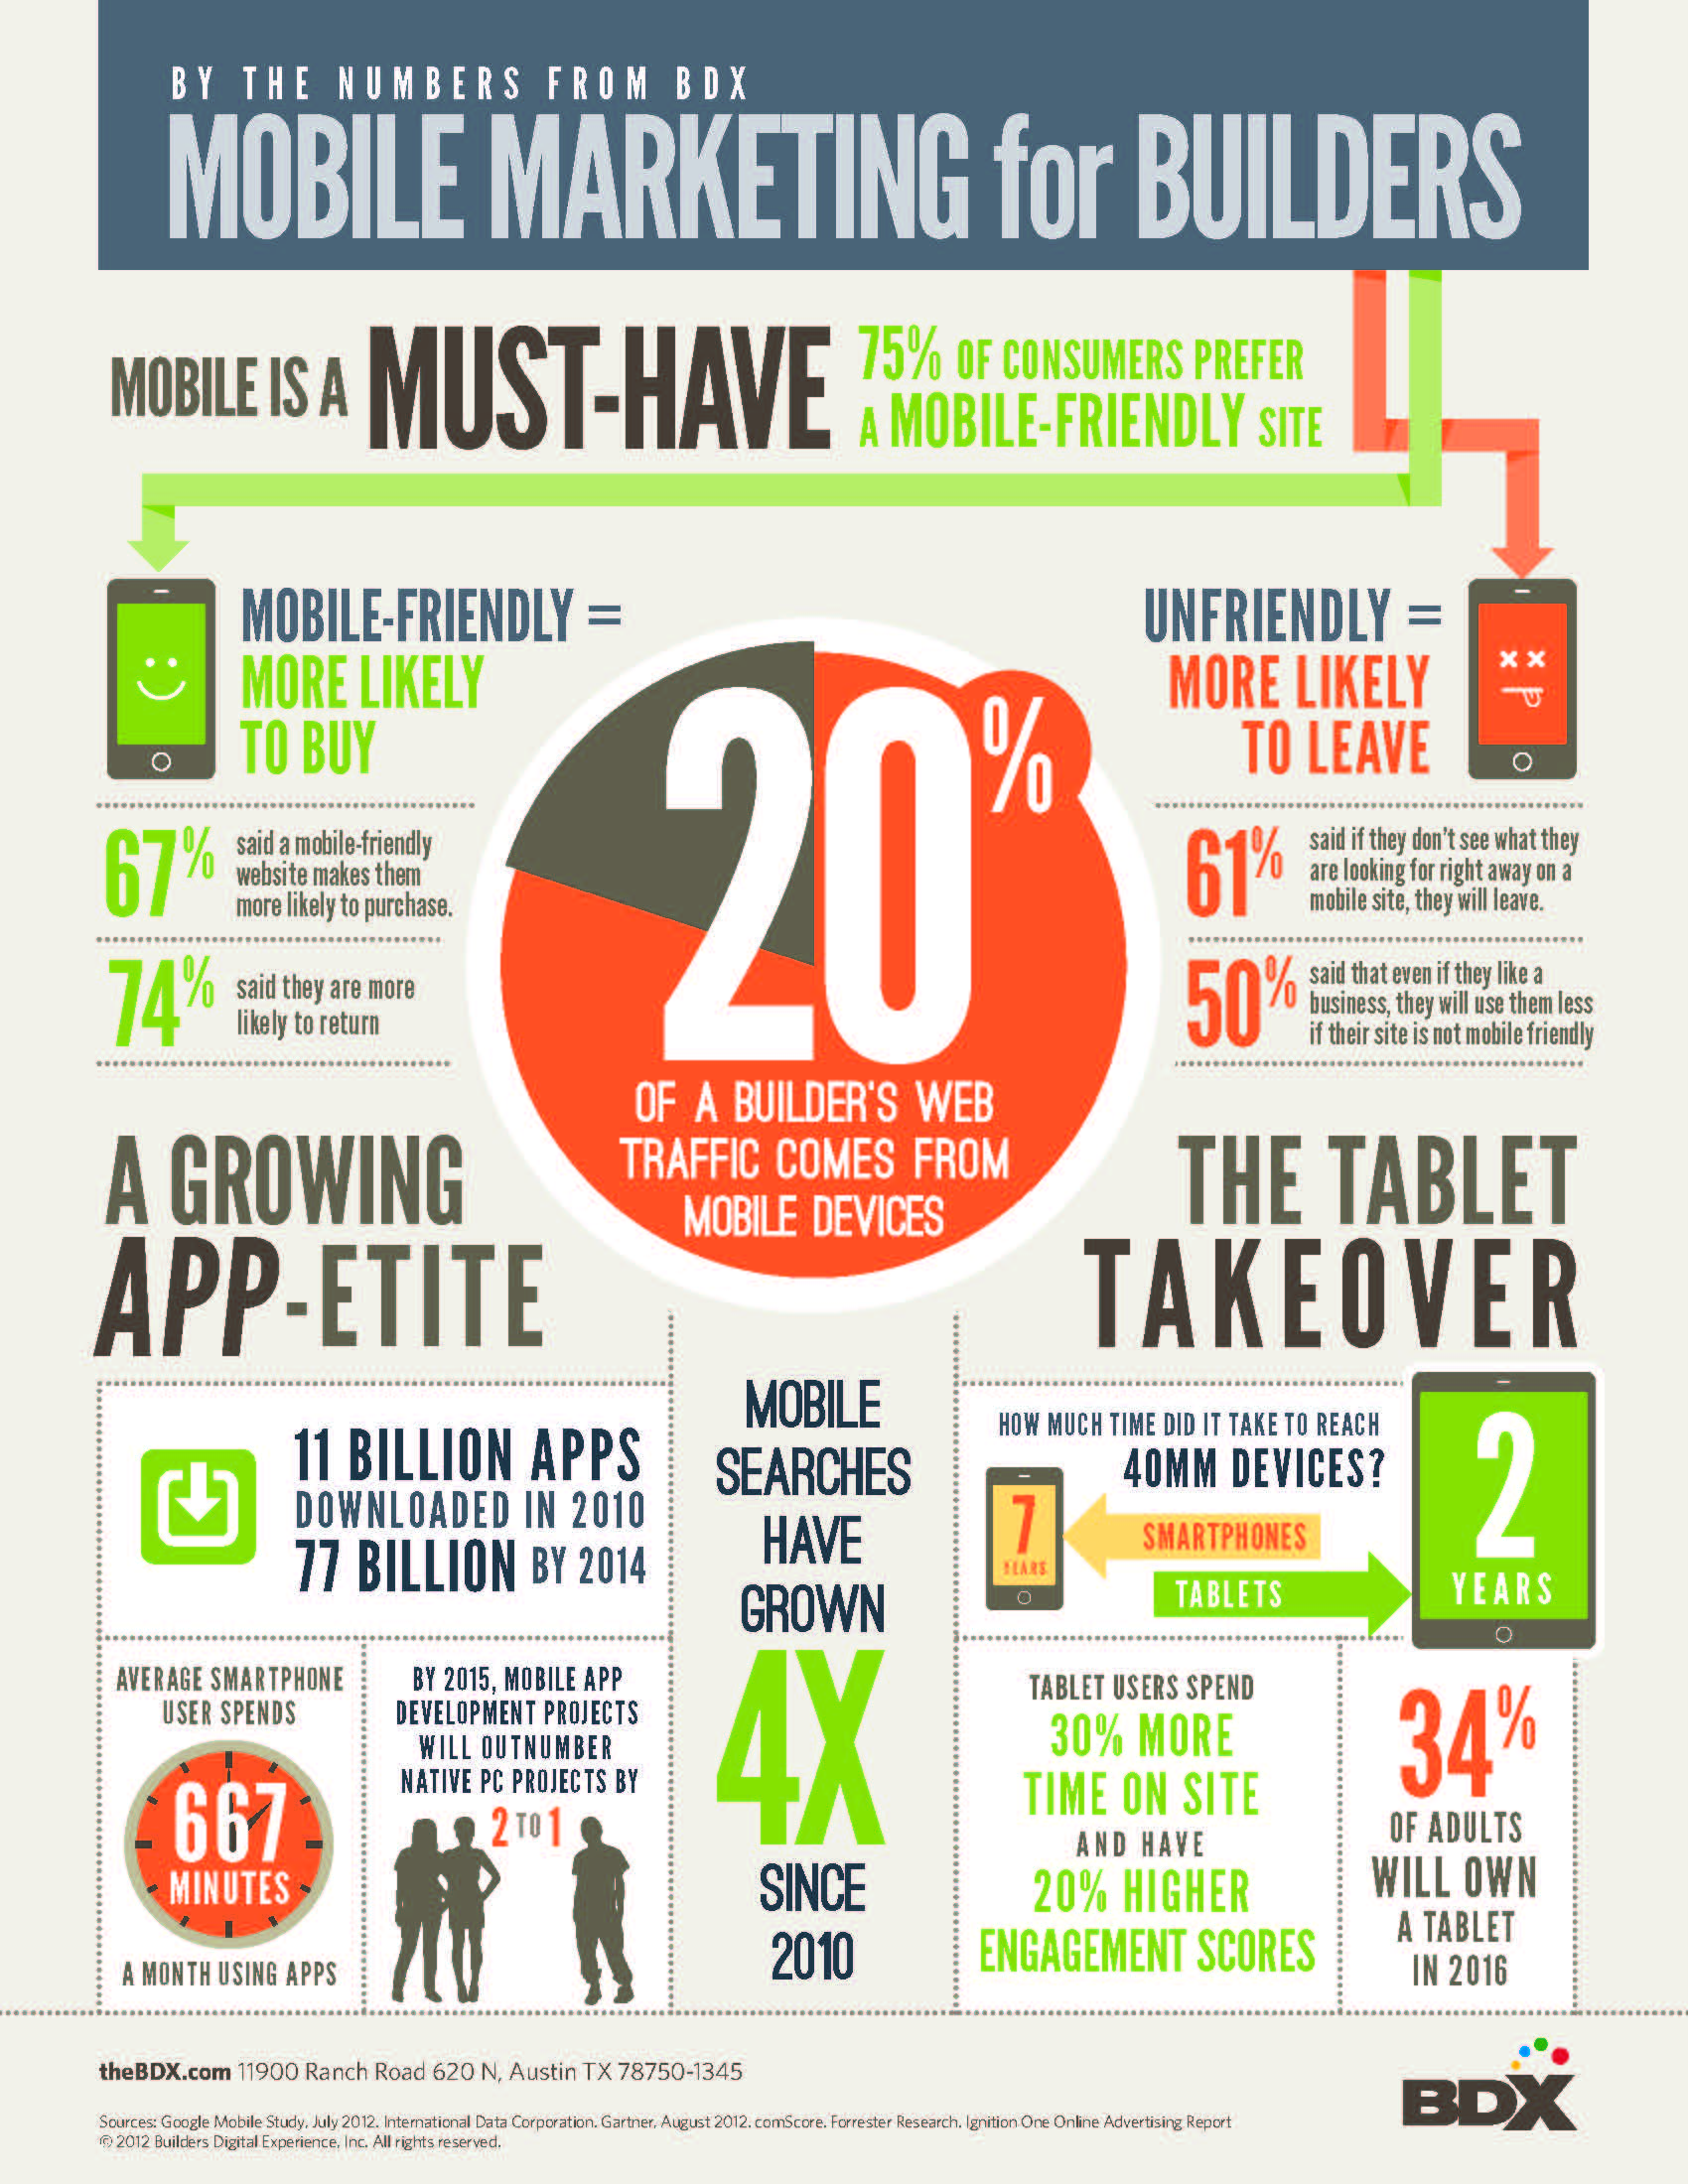 Infographic portrays informative data for mobile marketing for builders.